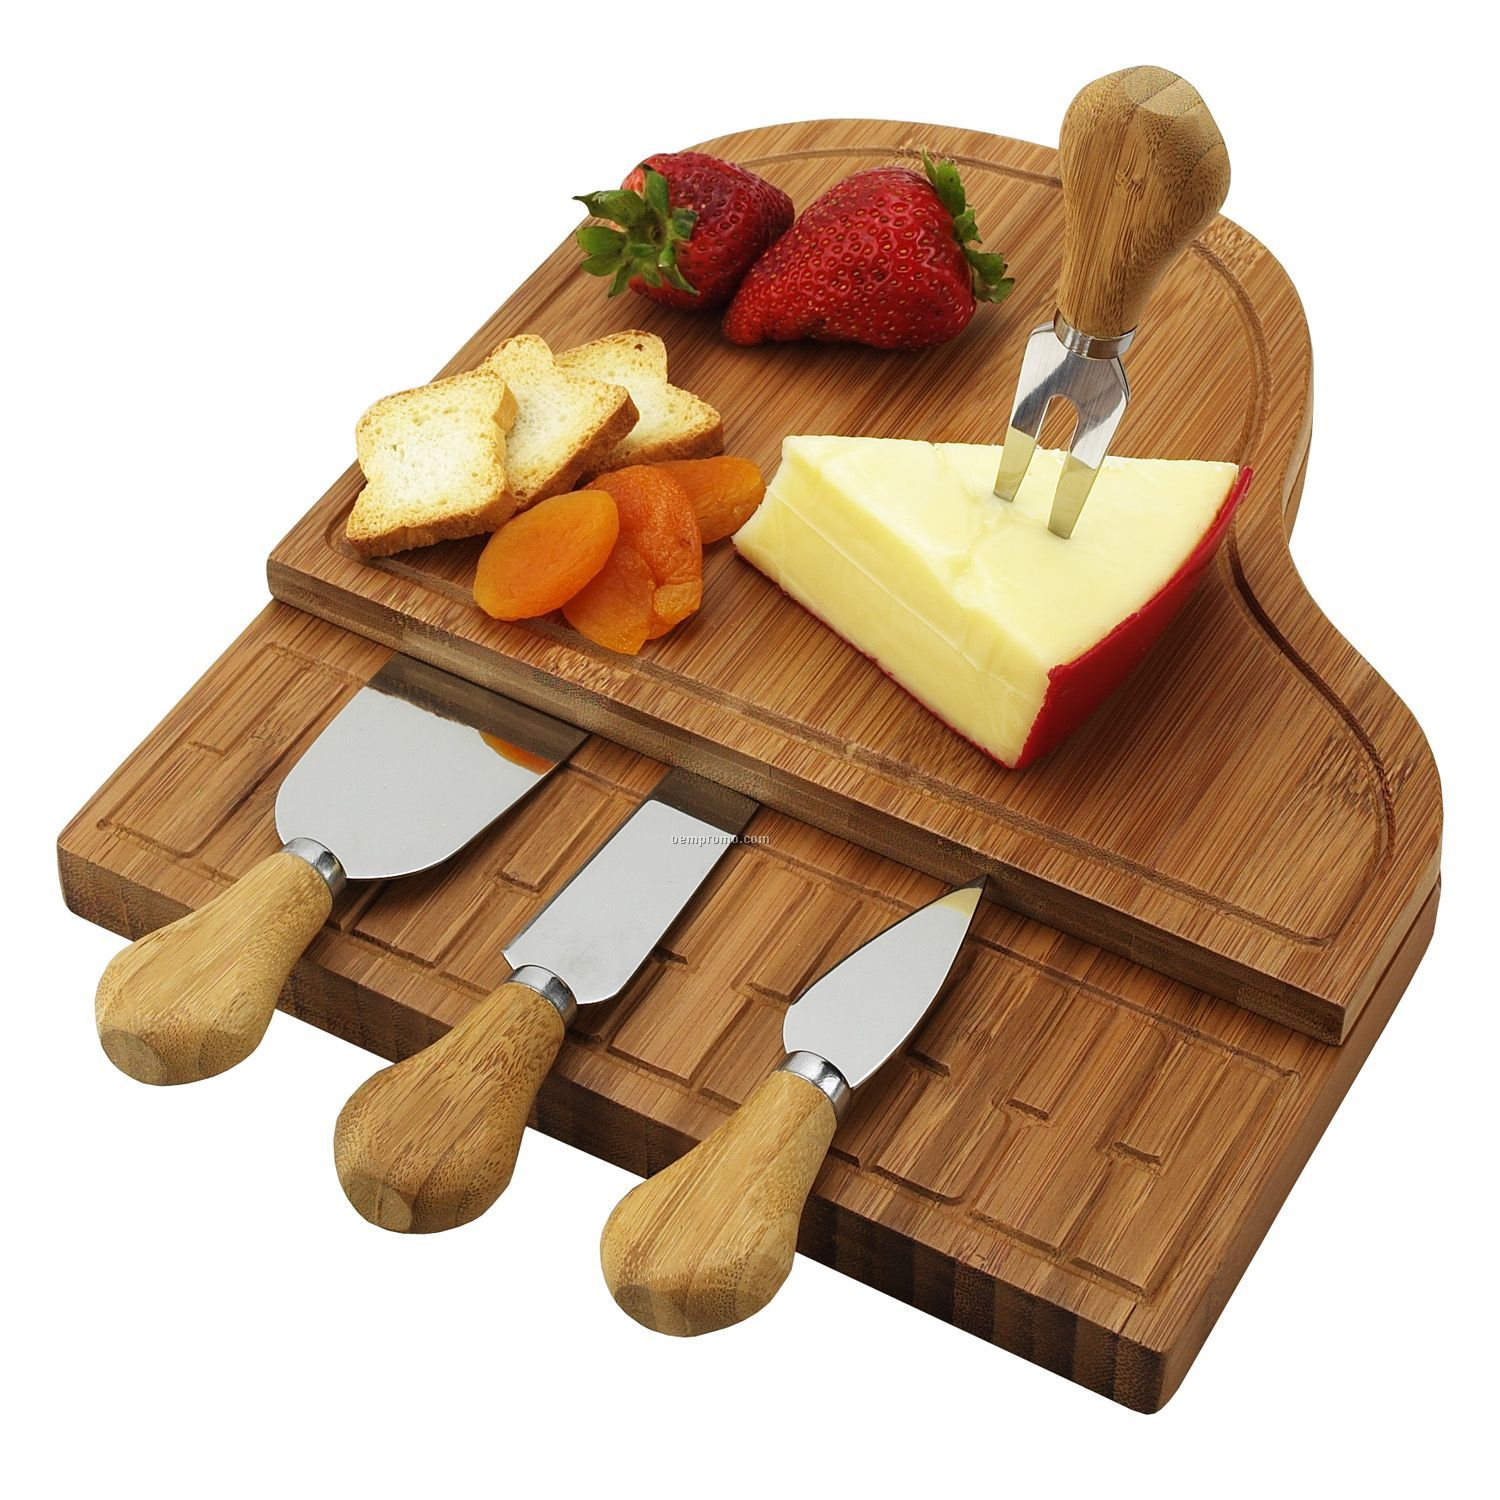 Grand Bamboo Piano Cheese Board Set